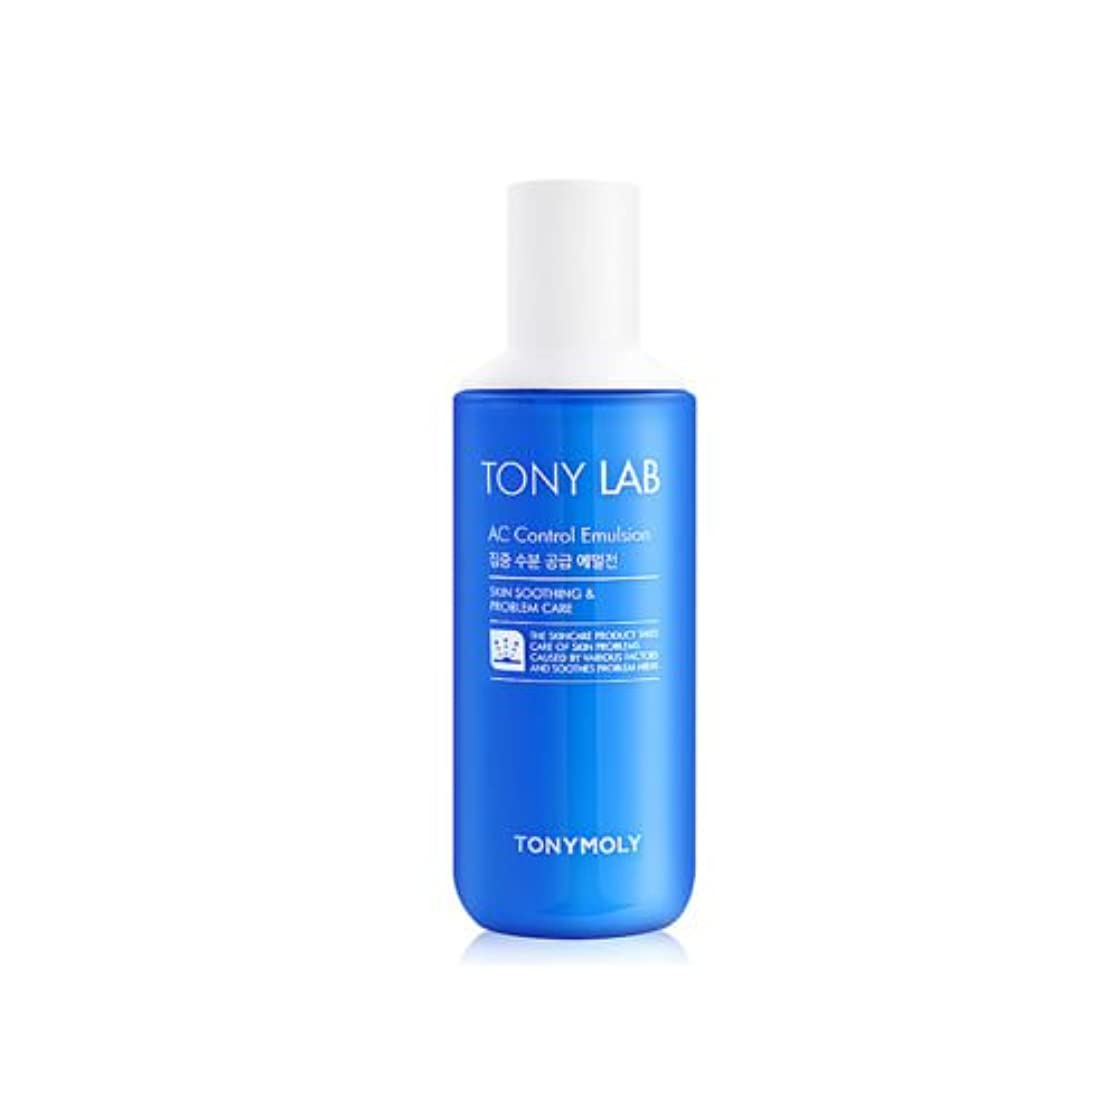 文房具発見即席TONYMOLY Tony Lab AC Control Emulsion (並行輸入品)